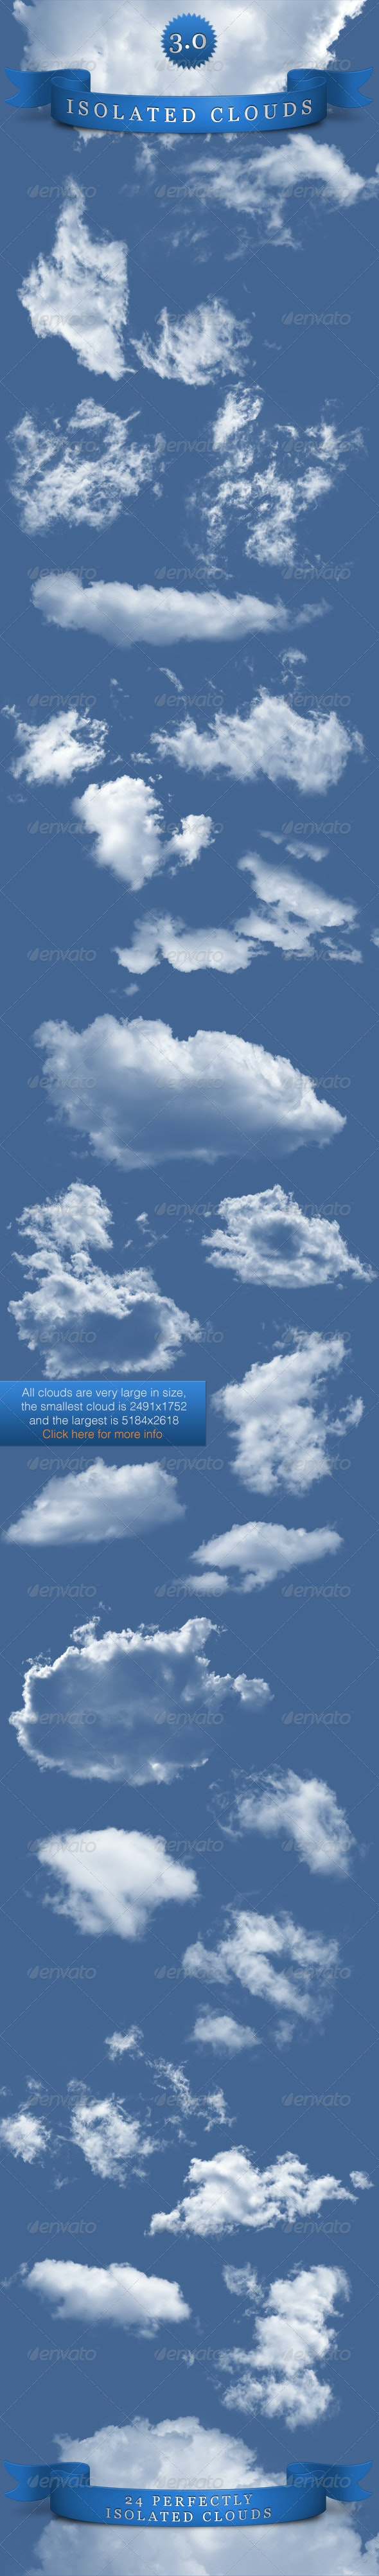 Isolated Clouds 3.0 - Nature & Animals Isolated Objects